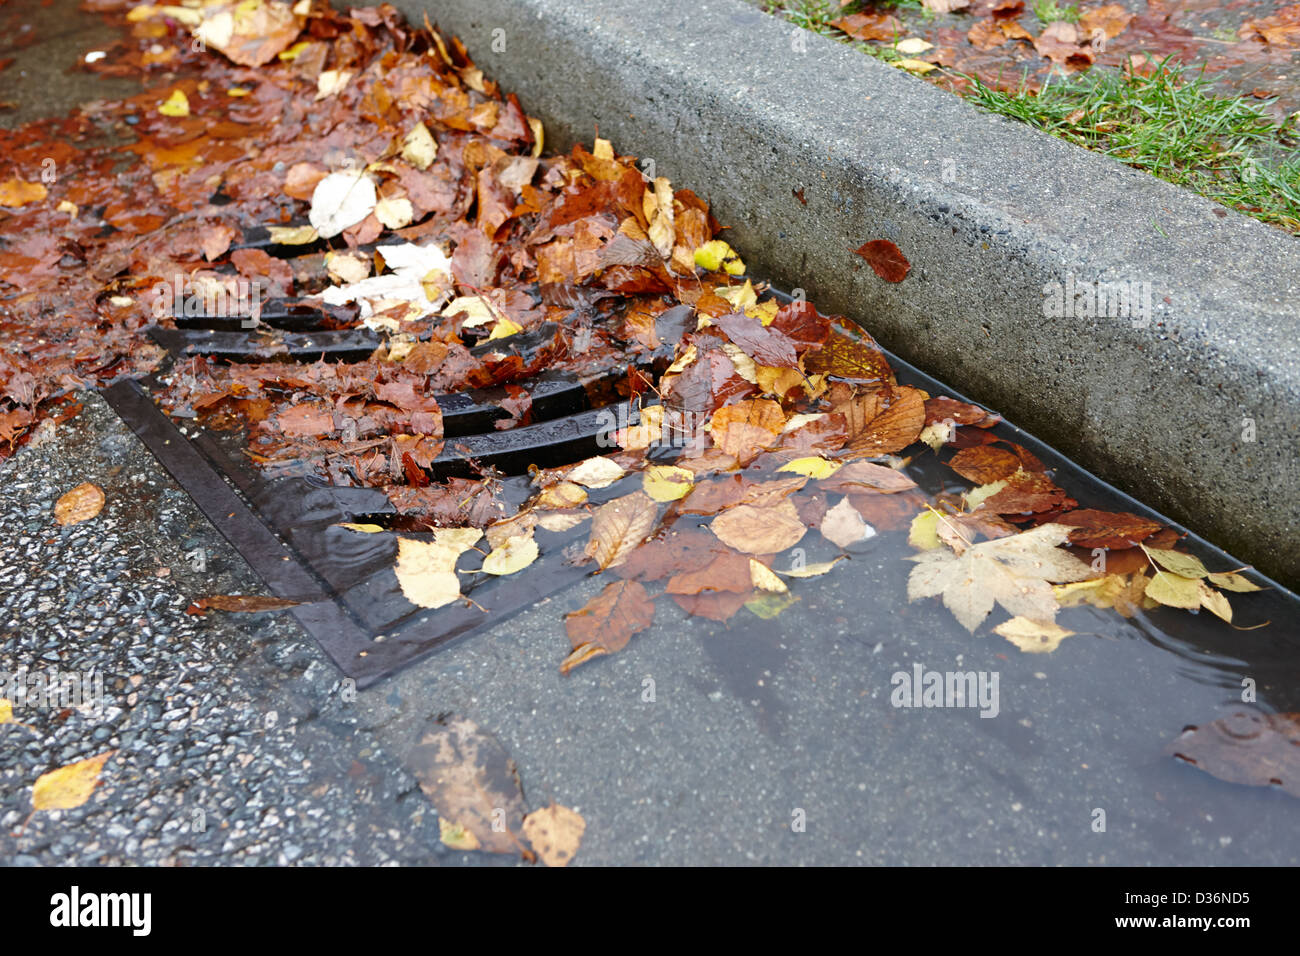 fallen autumn leaves blocking storm water run off drain Vancouver BC Canada - Stock Image